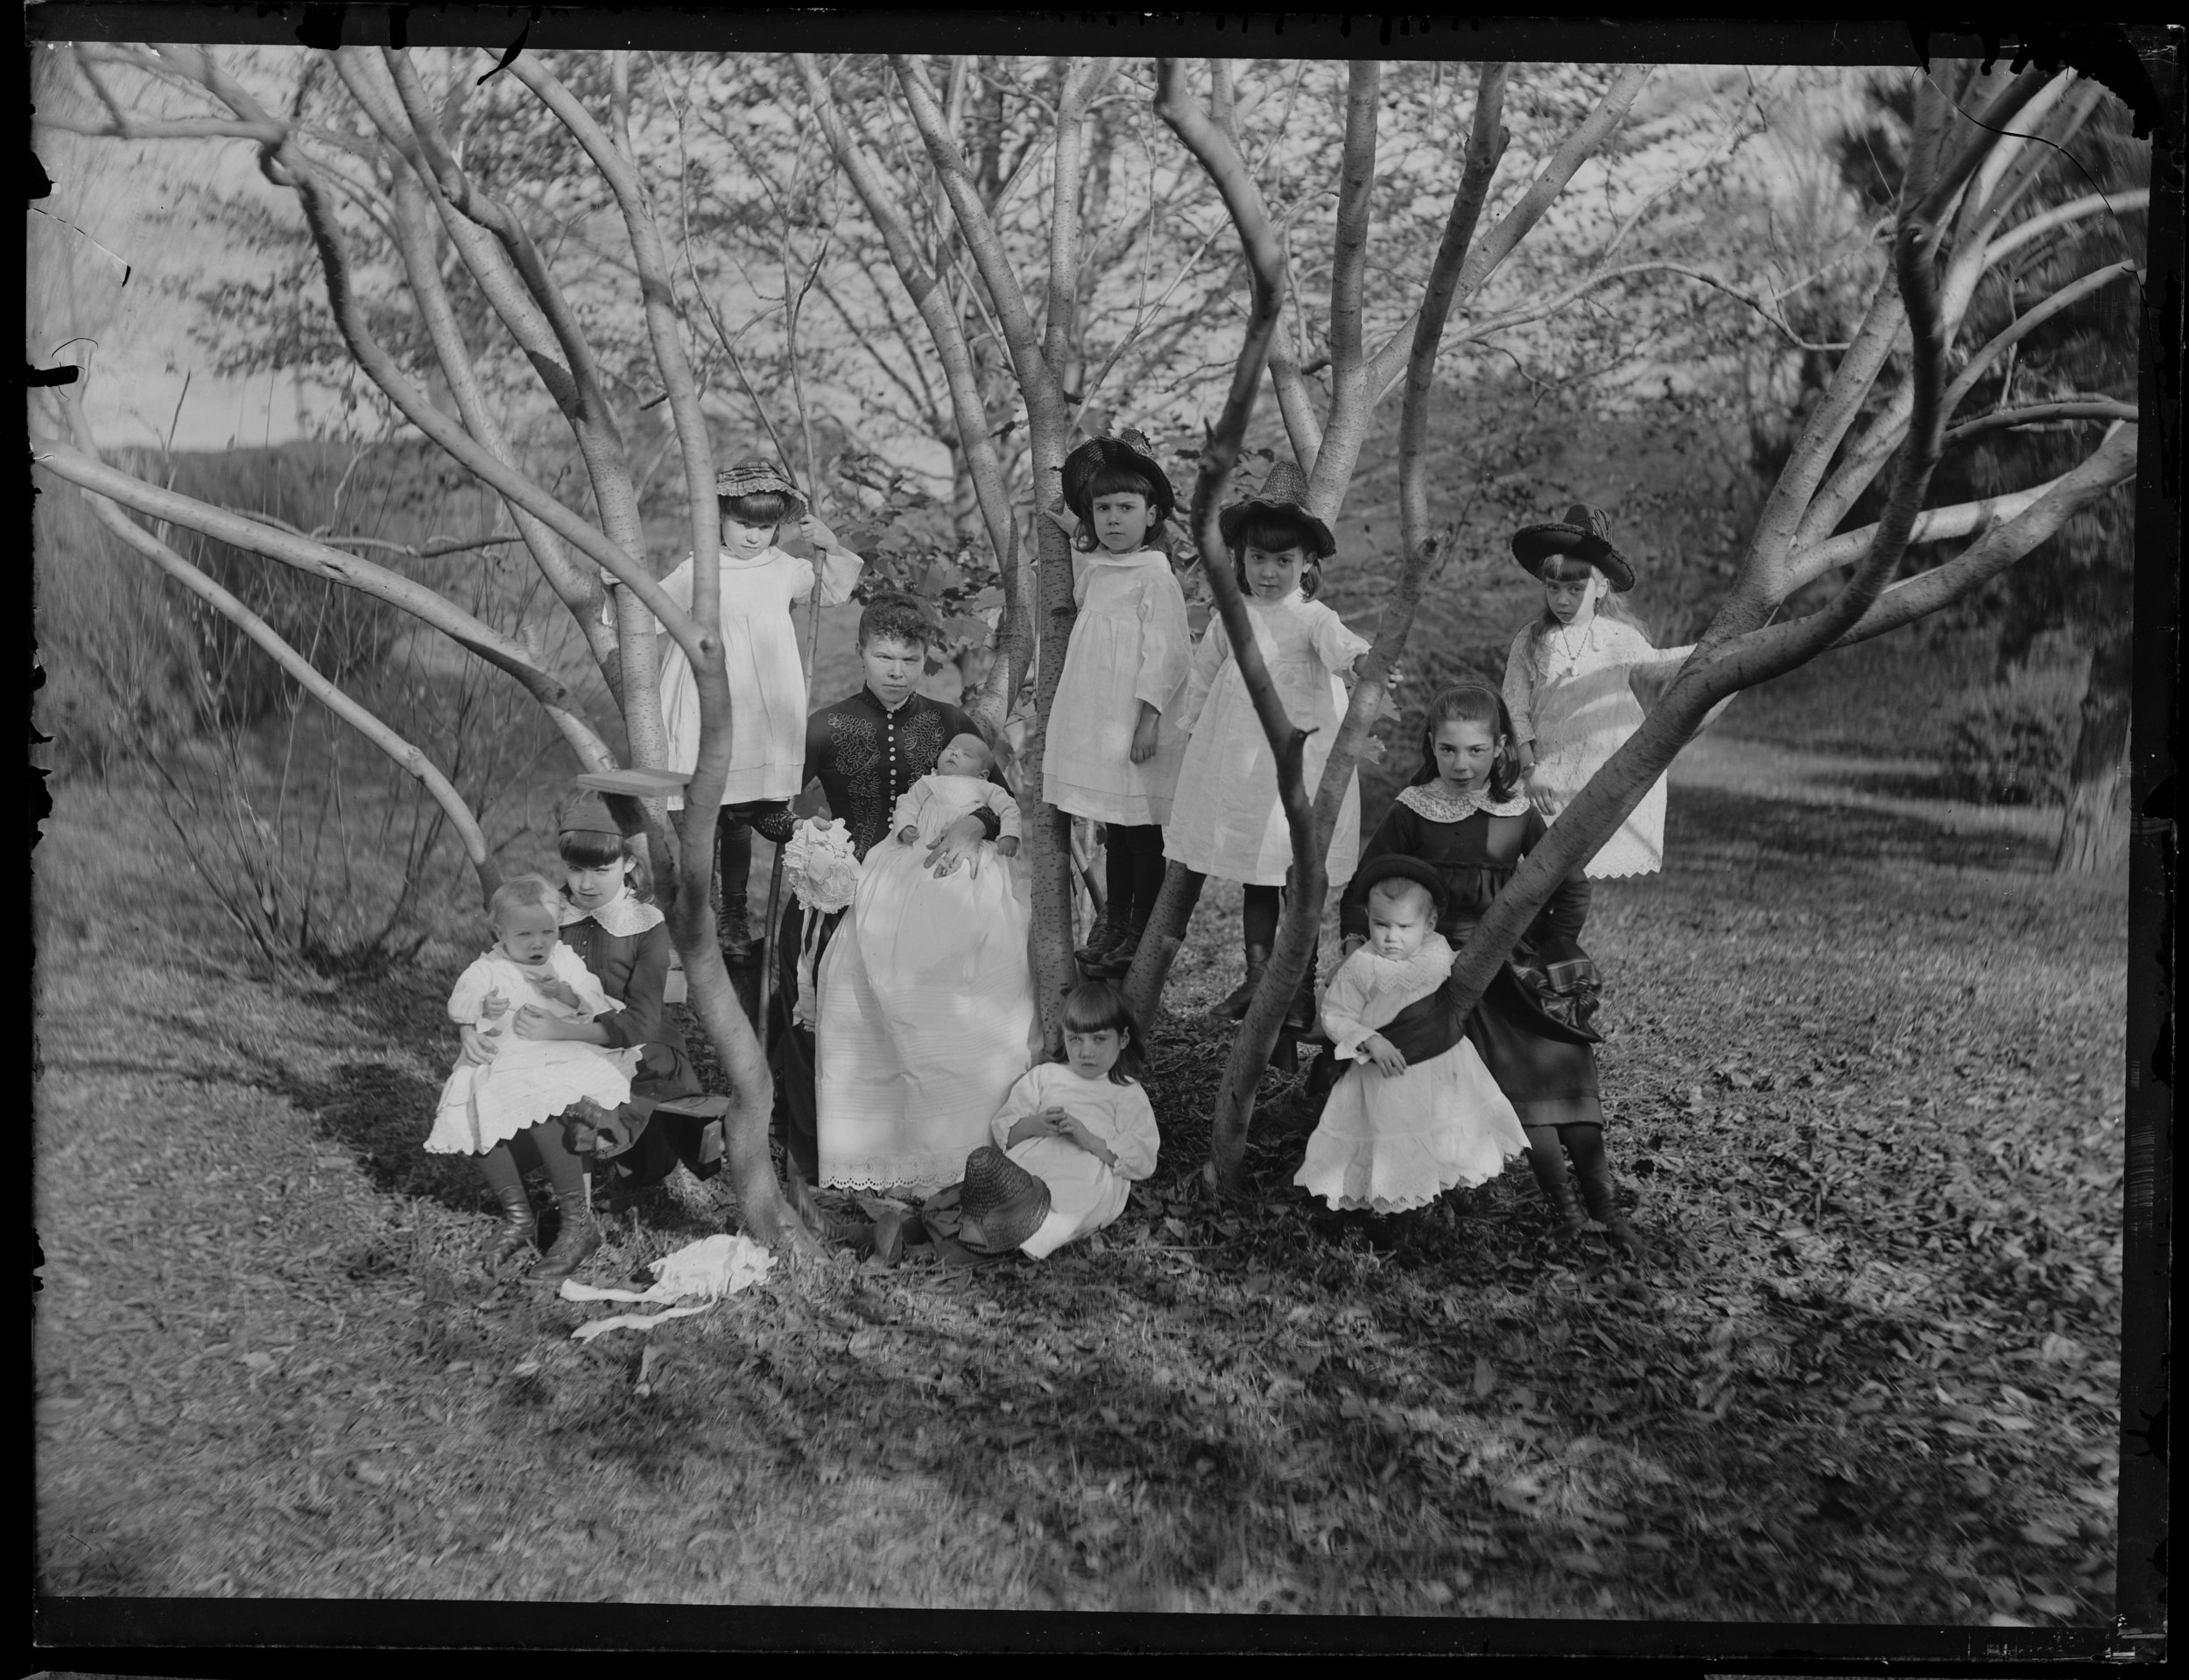 Cocroft children in the trees, Clear Comfort, November 2, 1886